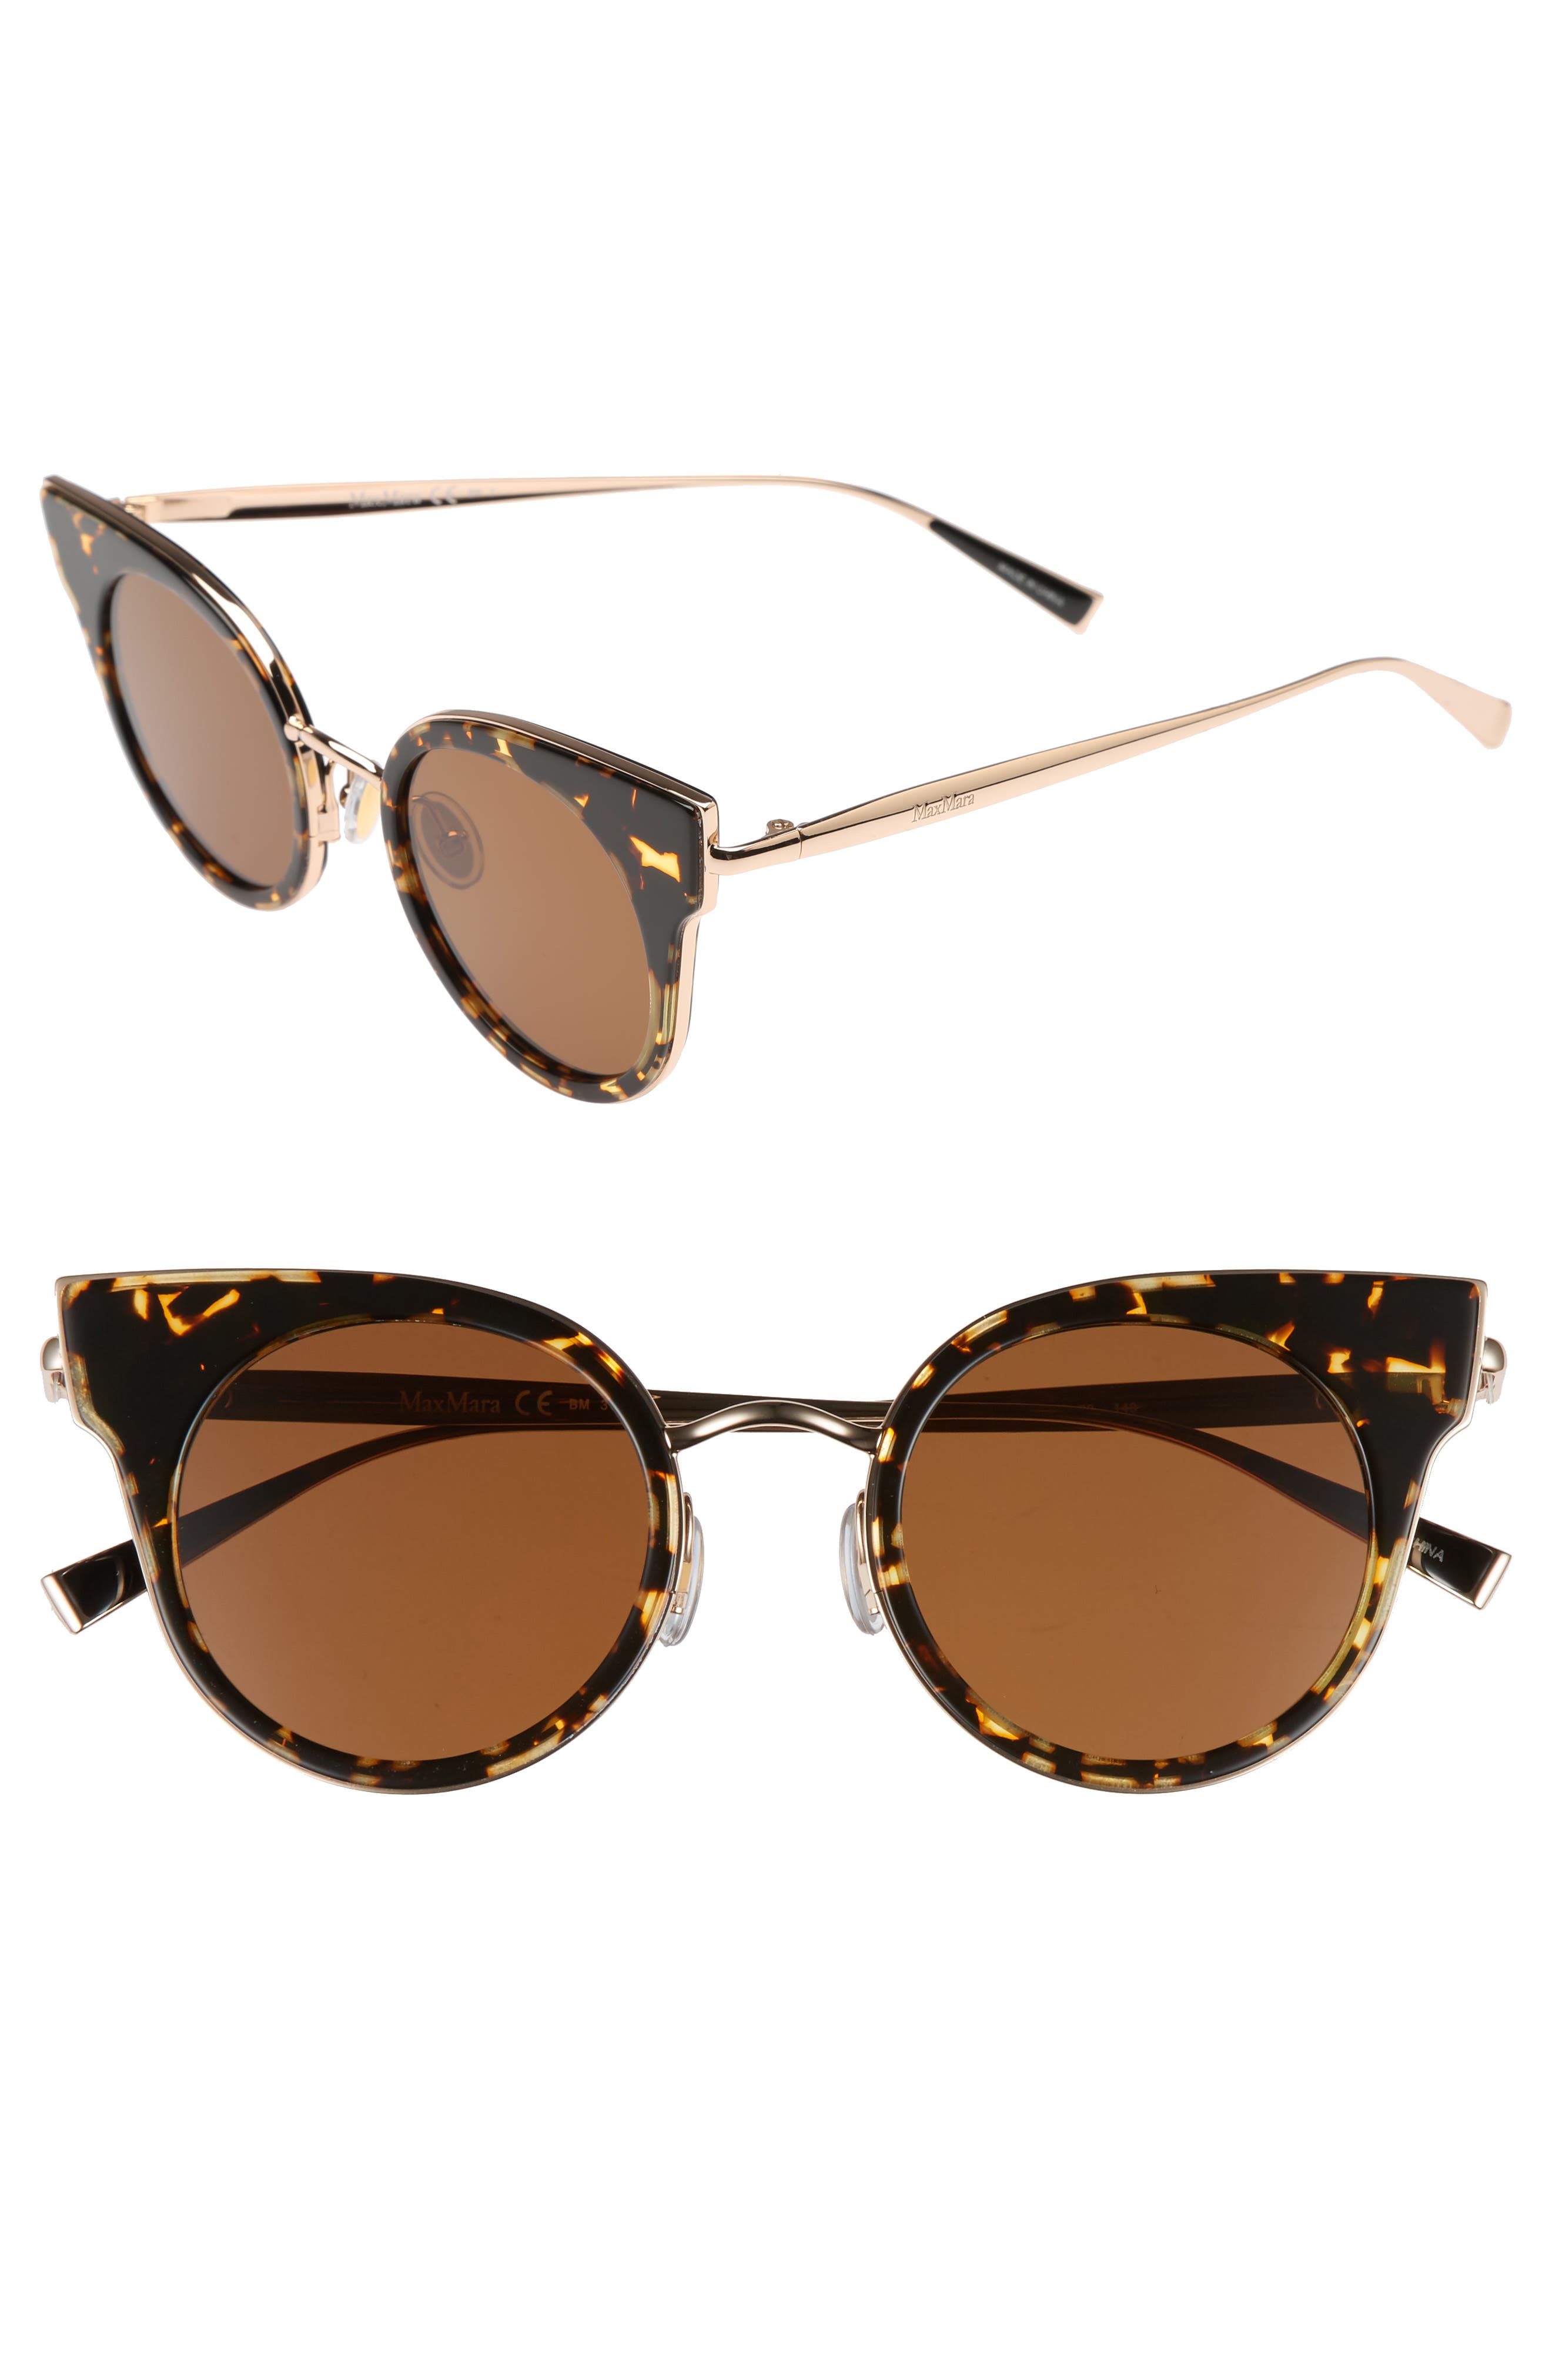 Ilde 46mm Cat Eye Sunglasses,                             Main thumbnail 1, color,